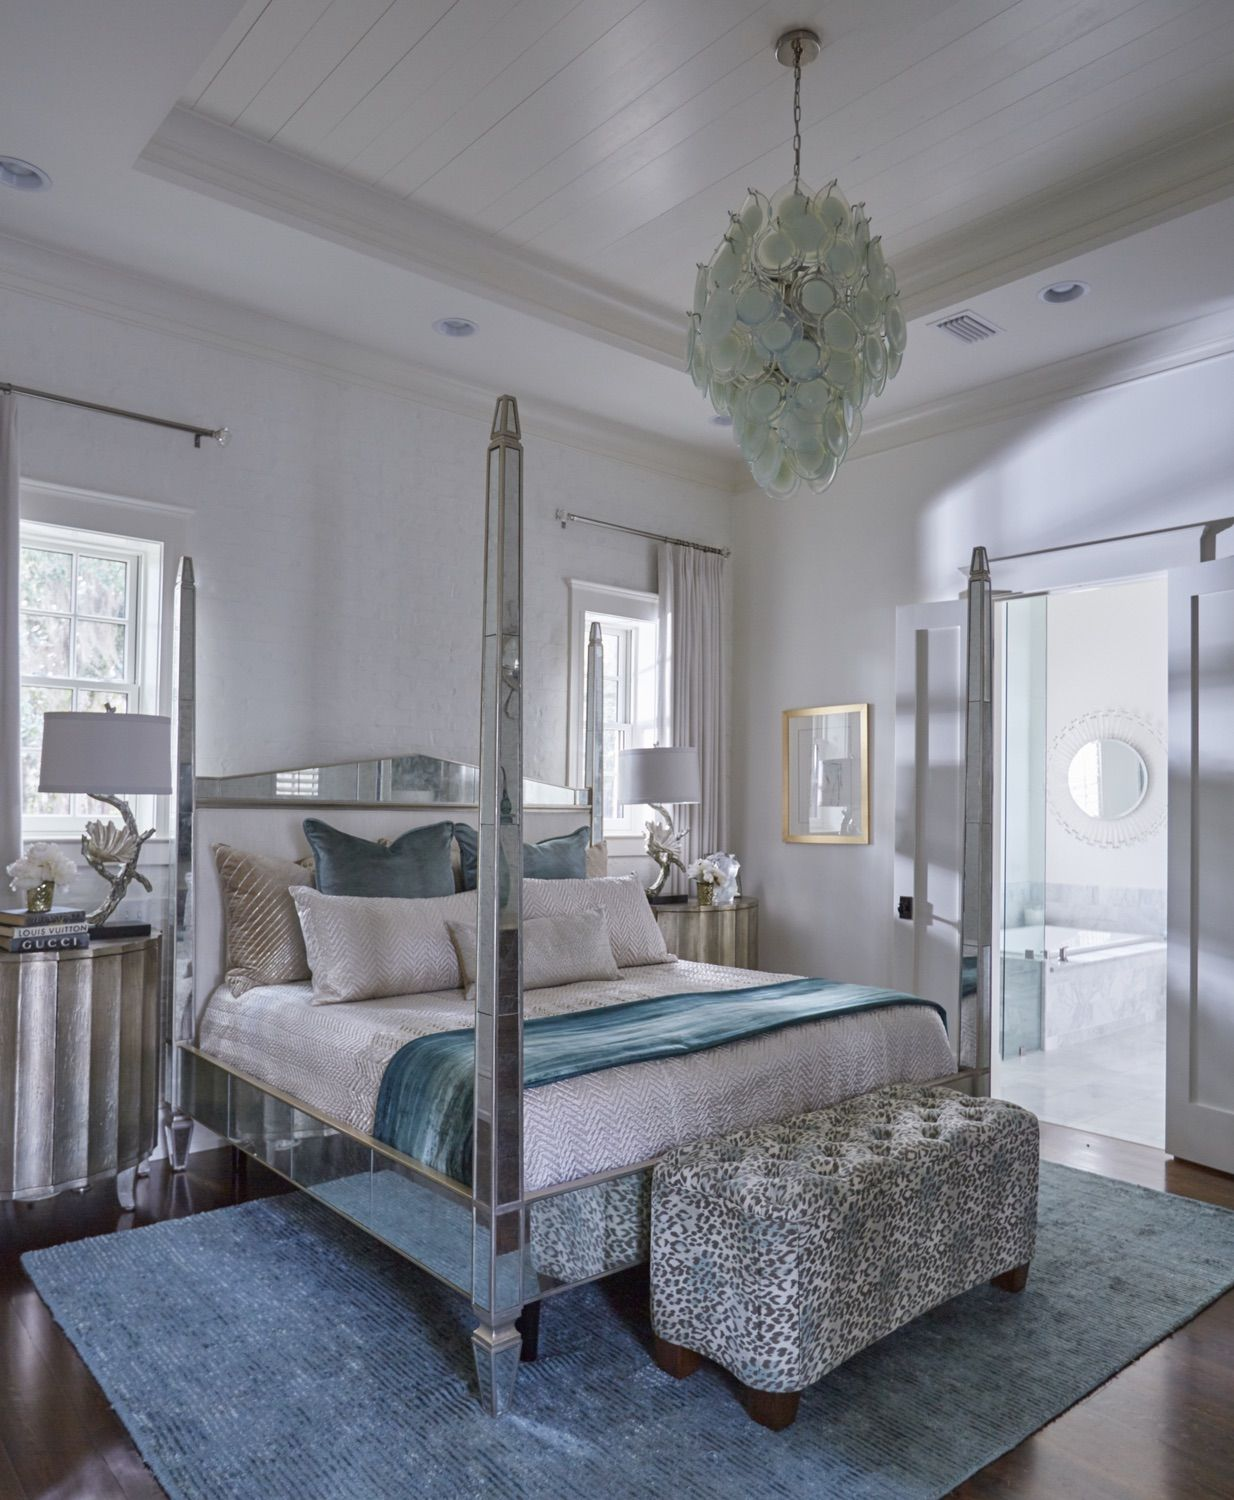 Old World Chic Relaxing Master Bedroom Coastal Bedrooms Master